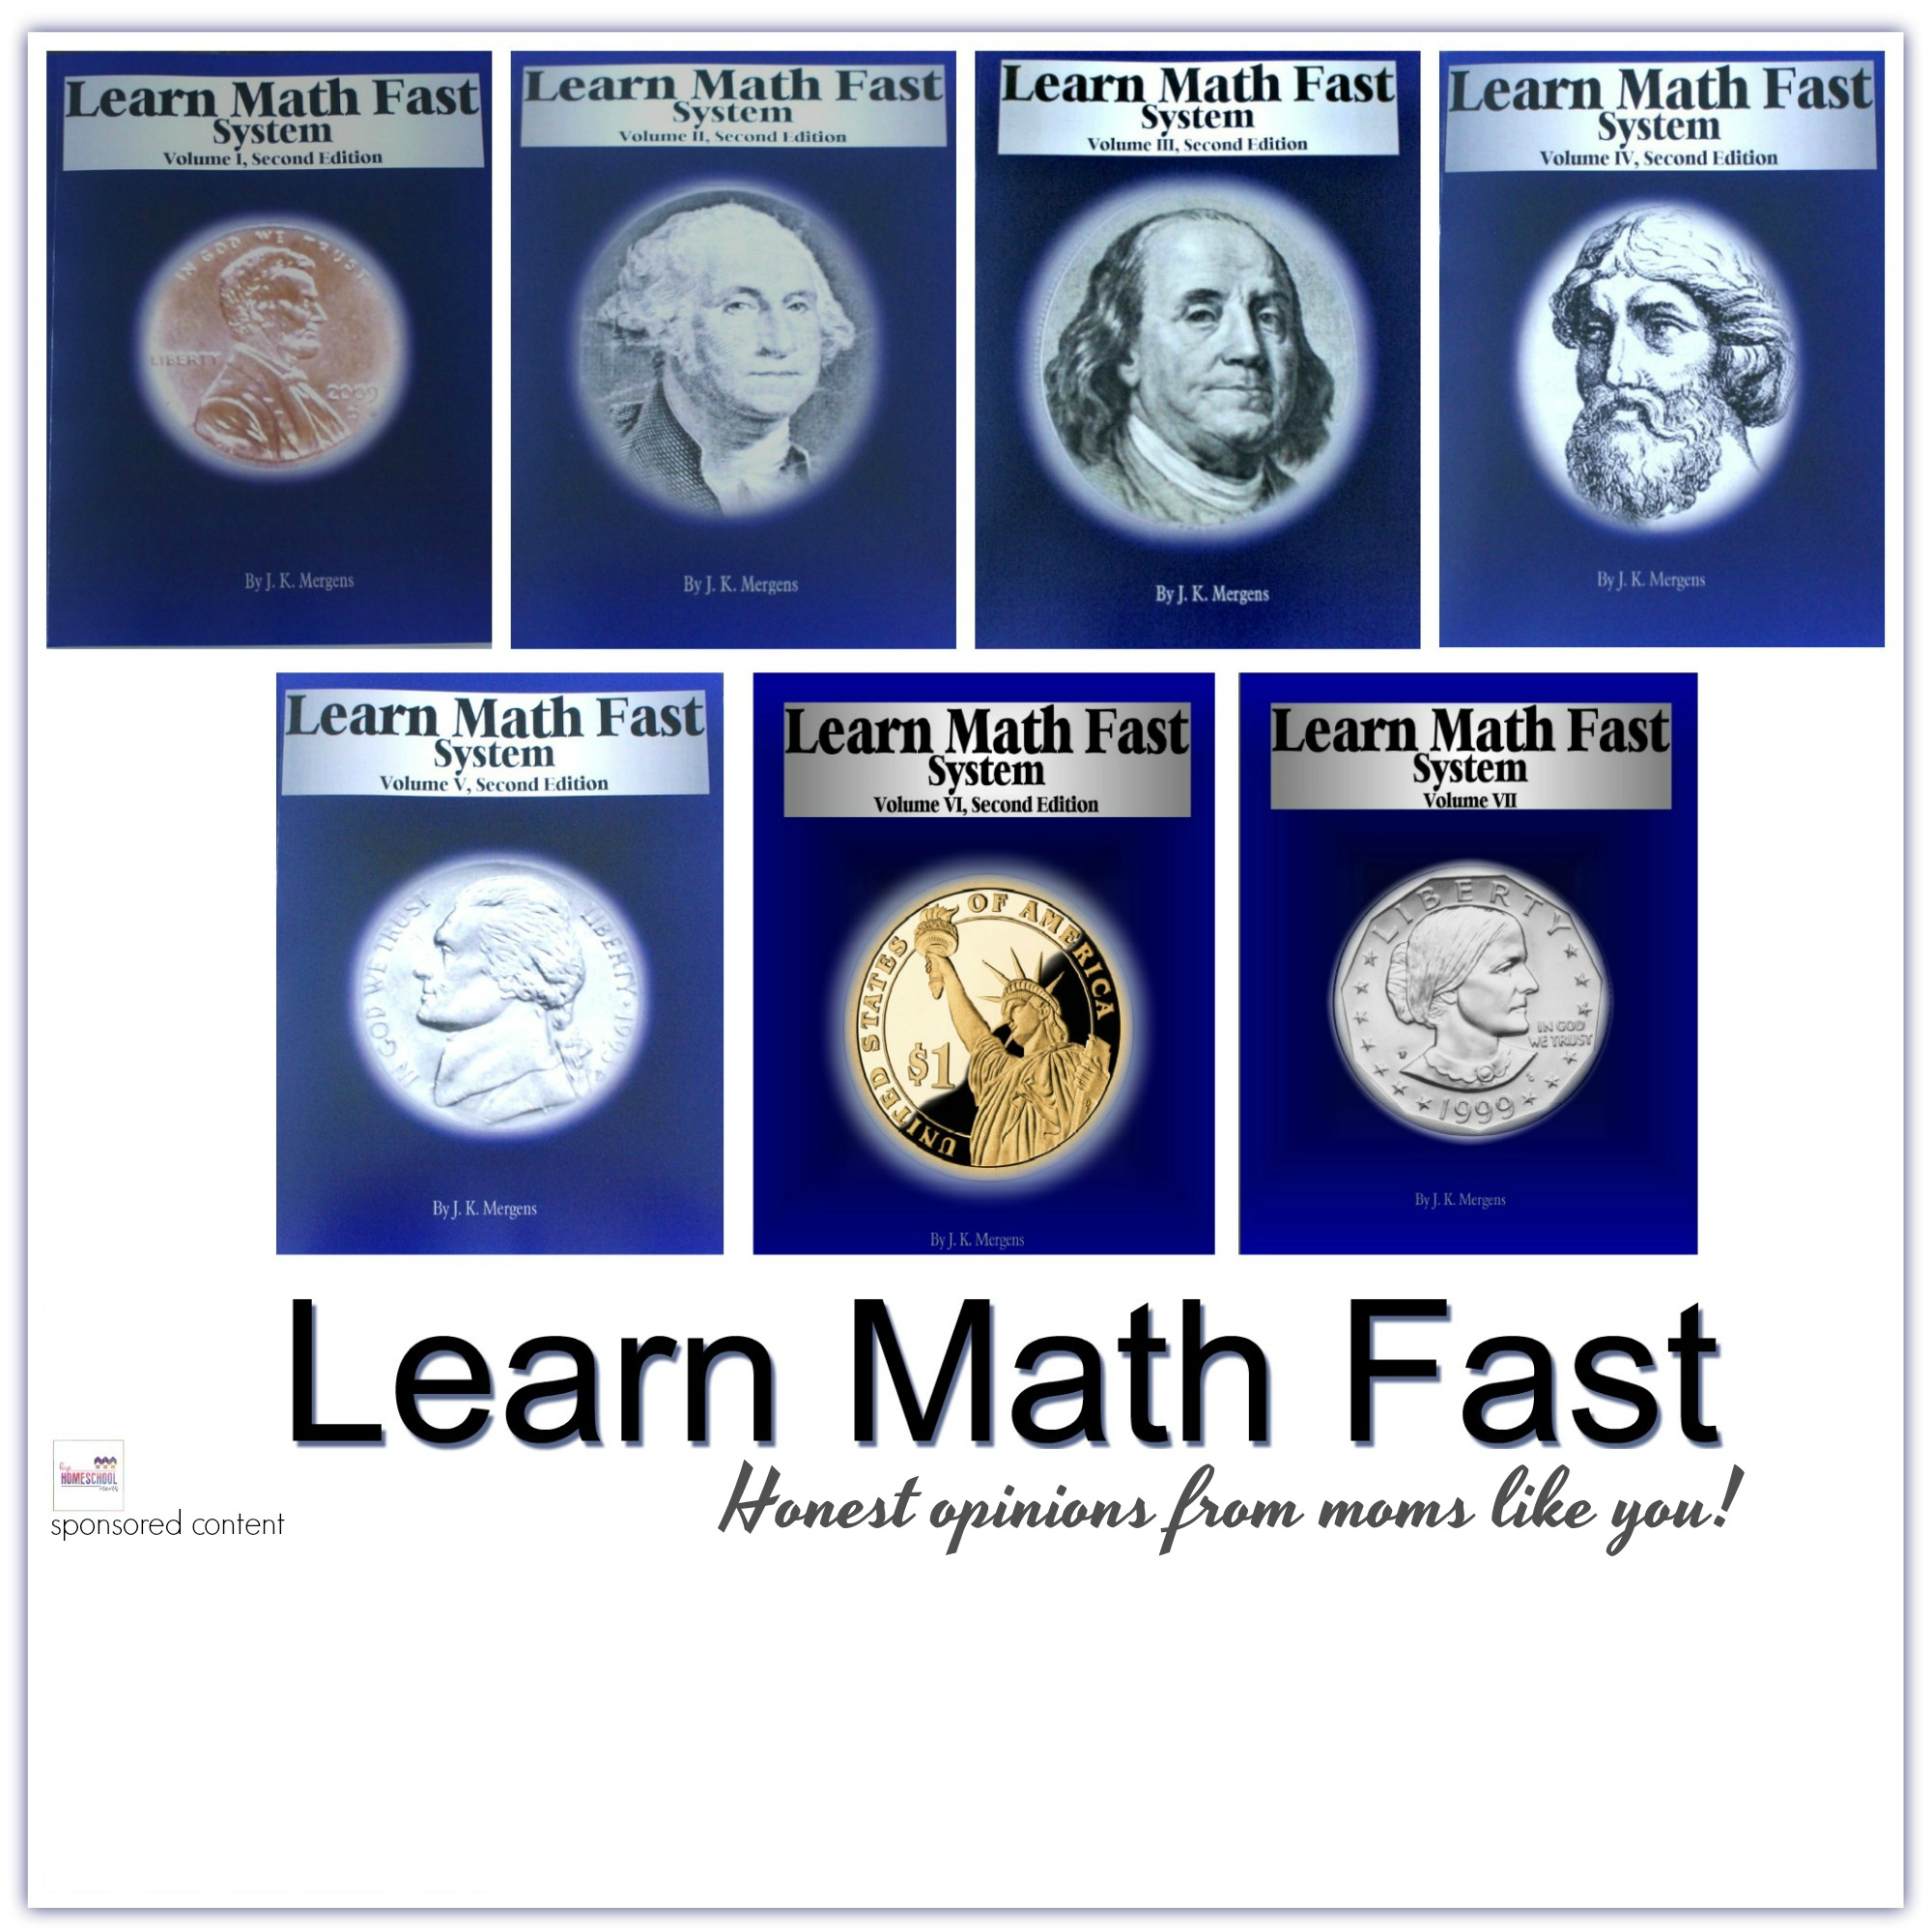 Does your child struggle with math? Try Learn Math Fast to help catch up!